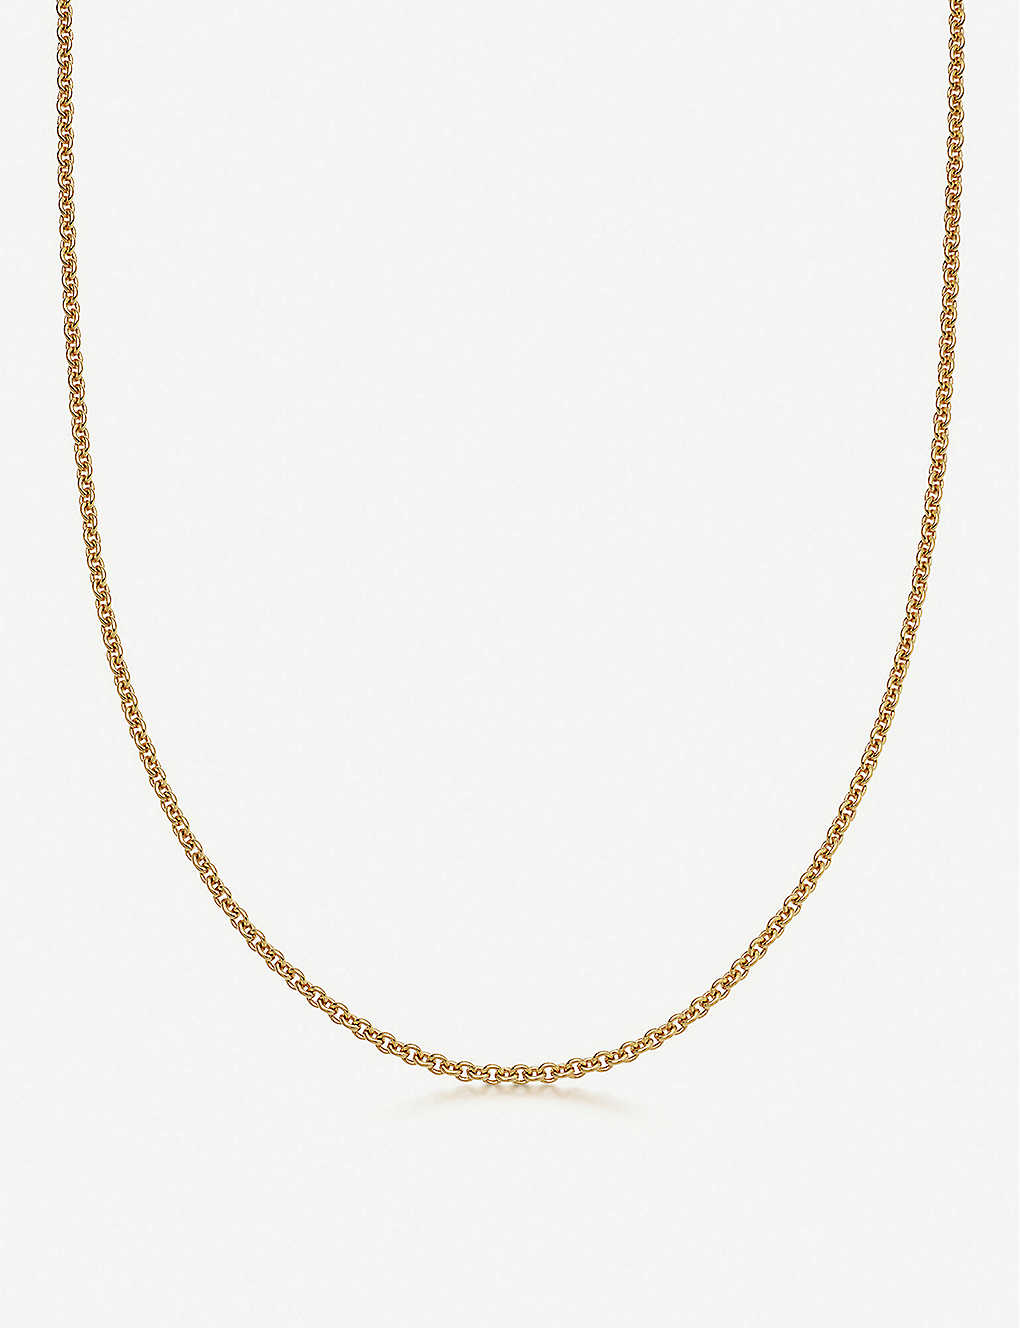 LINKS OF LONDON: Brutalist short 18ct yellow gold-vermeil chain necklace